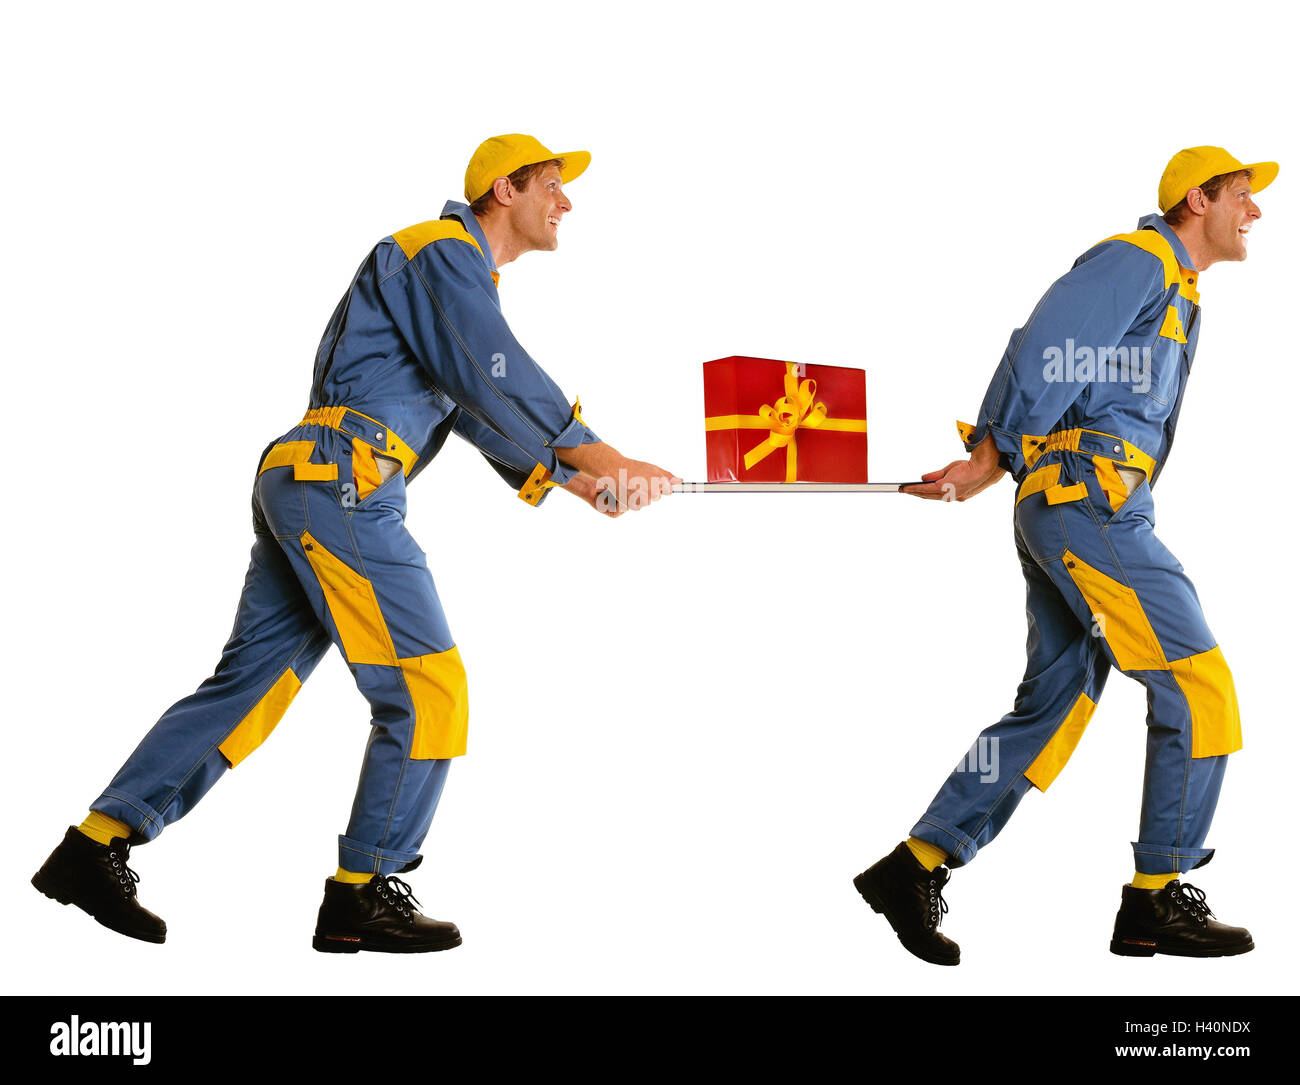 Messengers, present, block, there run, tread, professions, man, occupation, parcel delivers, package delivery, package, - Stock Image